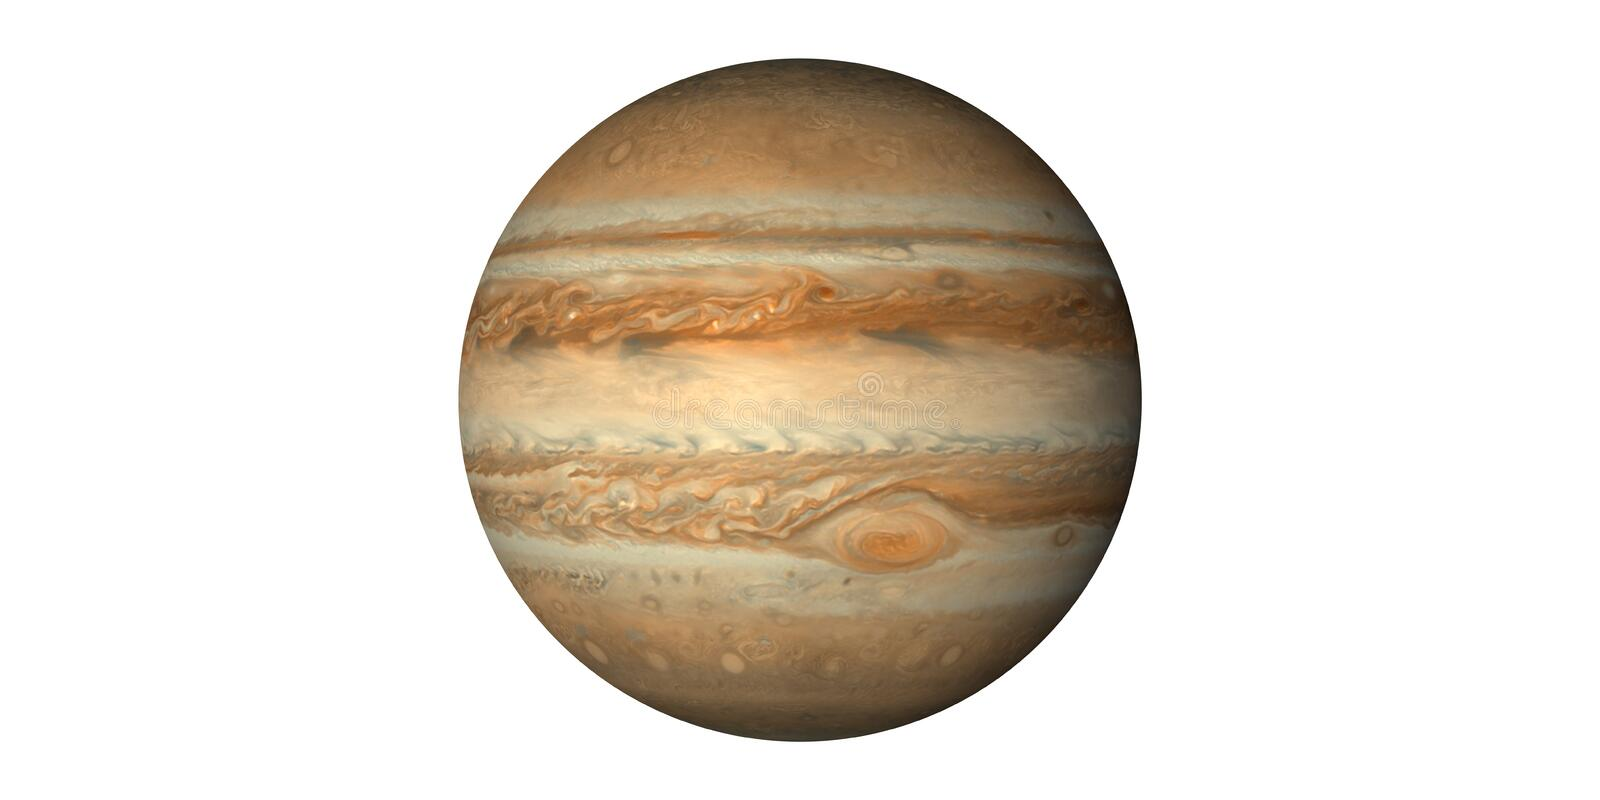 Planet jupiter in solar system seen from space royalty free stock photos